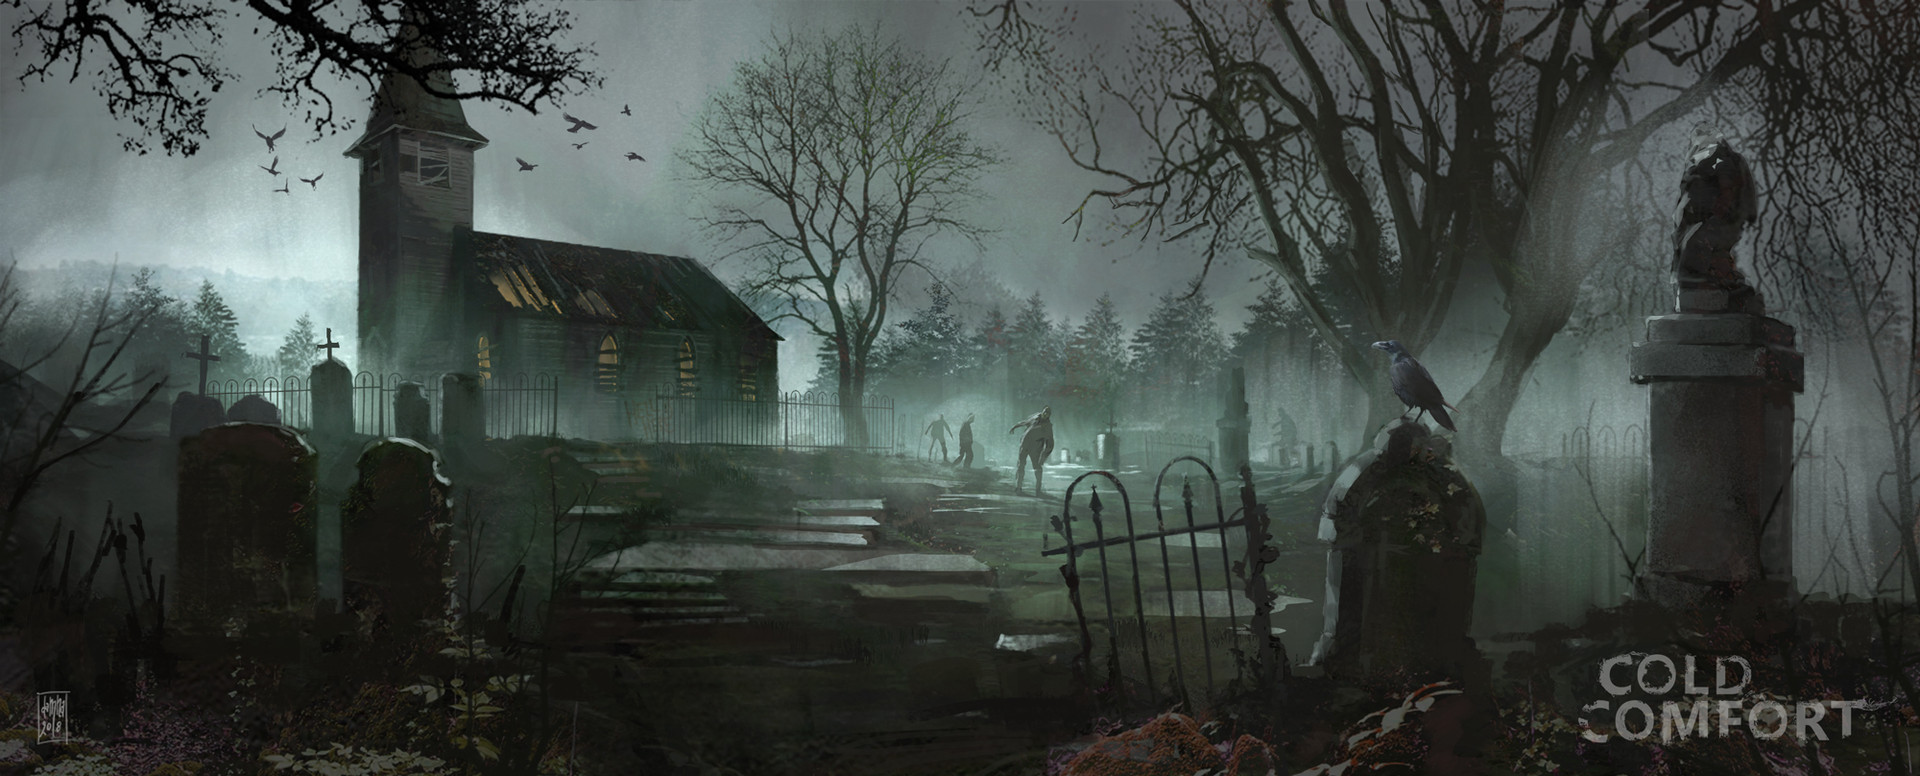 Cold confort game -church-concept-art.jp